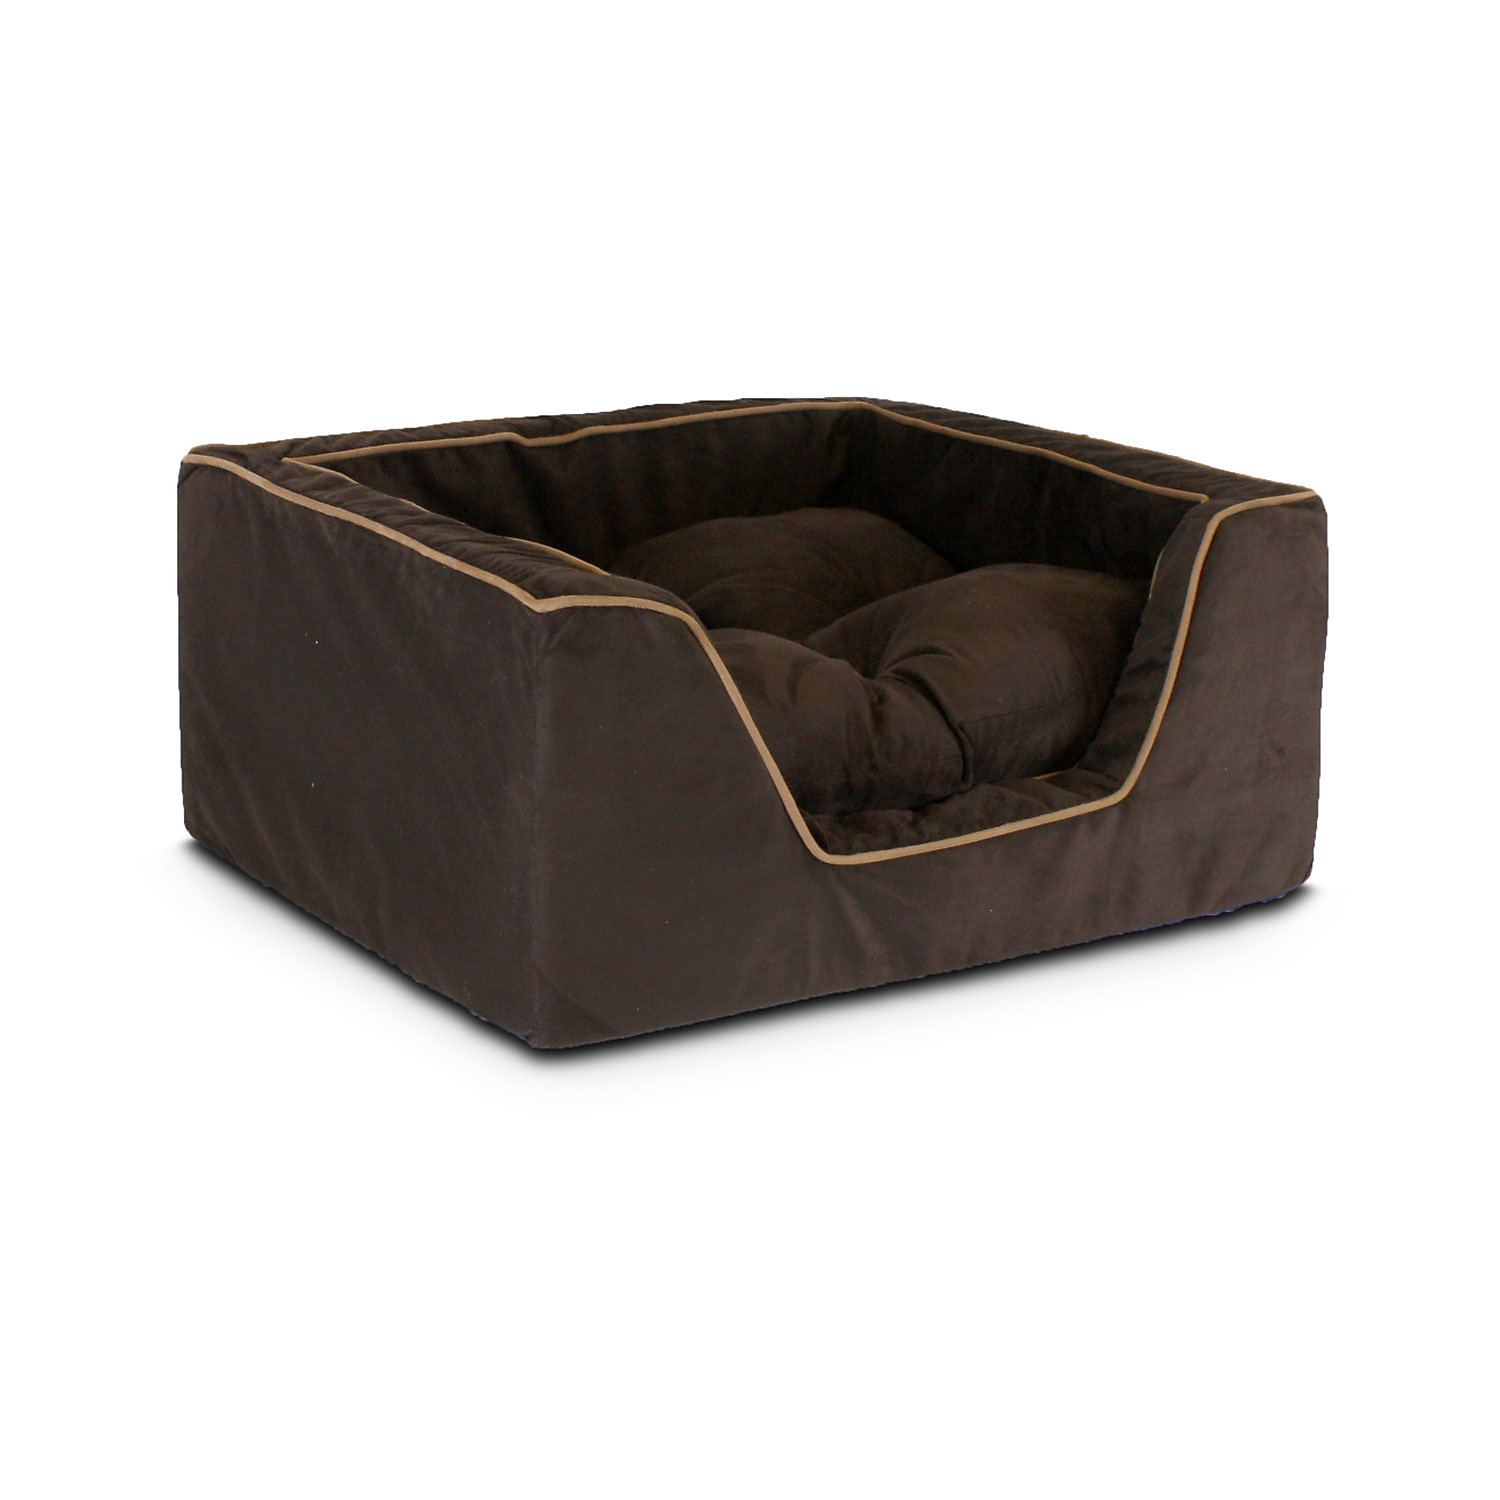 Snoozer Luxury Square Bed in Hot Fudge with Cafe Cording 27 L x 23 W Large Brown